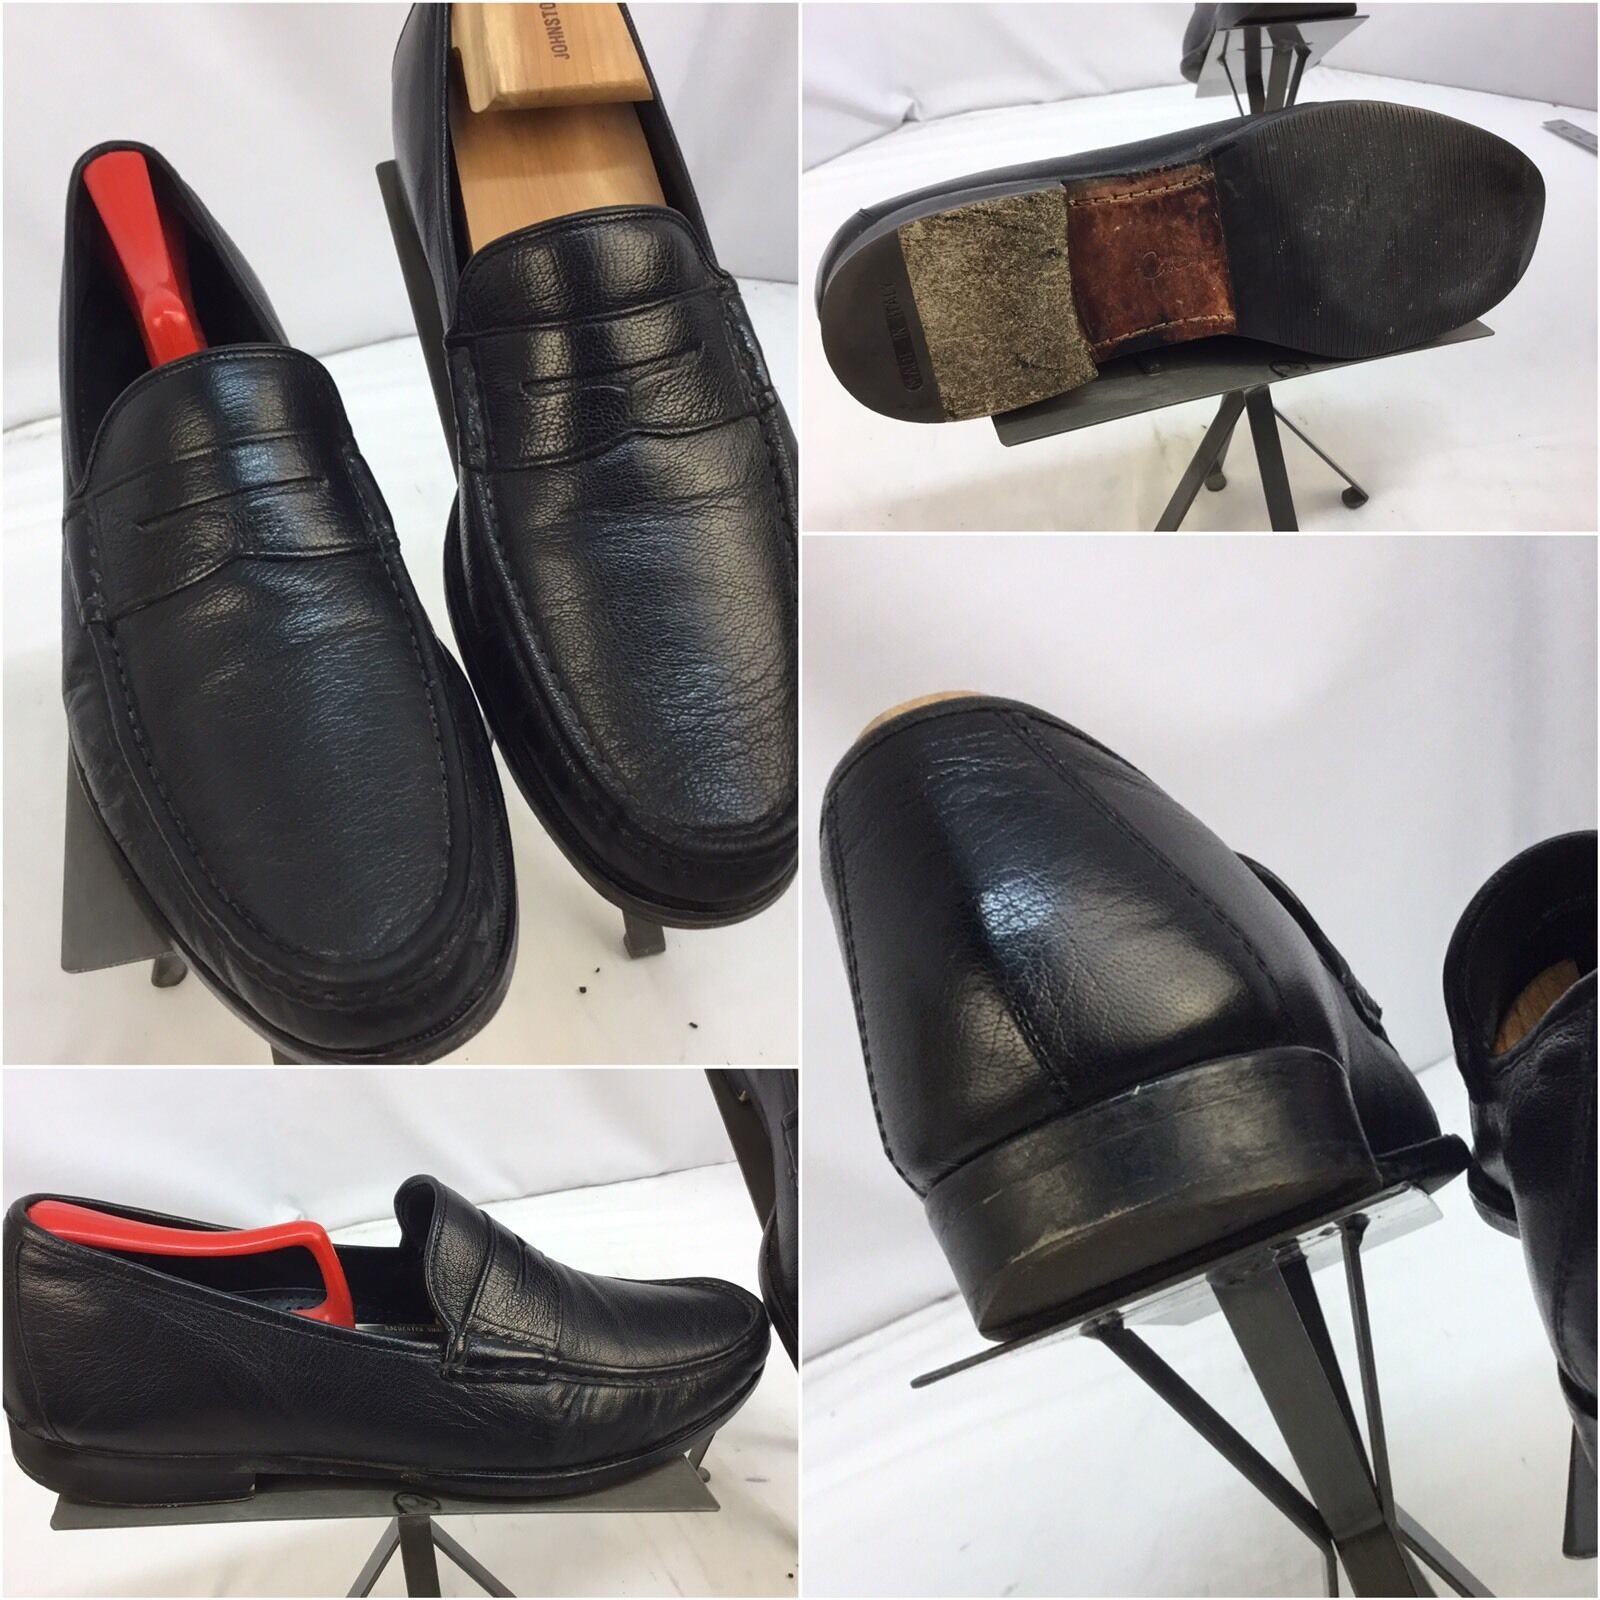 Cole Haan Made Loafers Shoes Sz 10 Black Slip On Made Haan India YGI H7 83291d